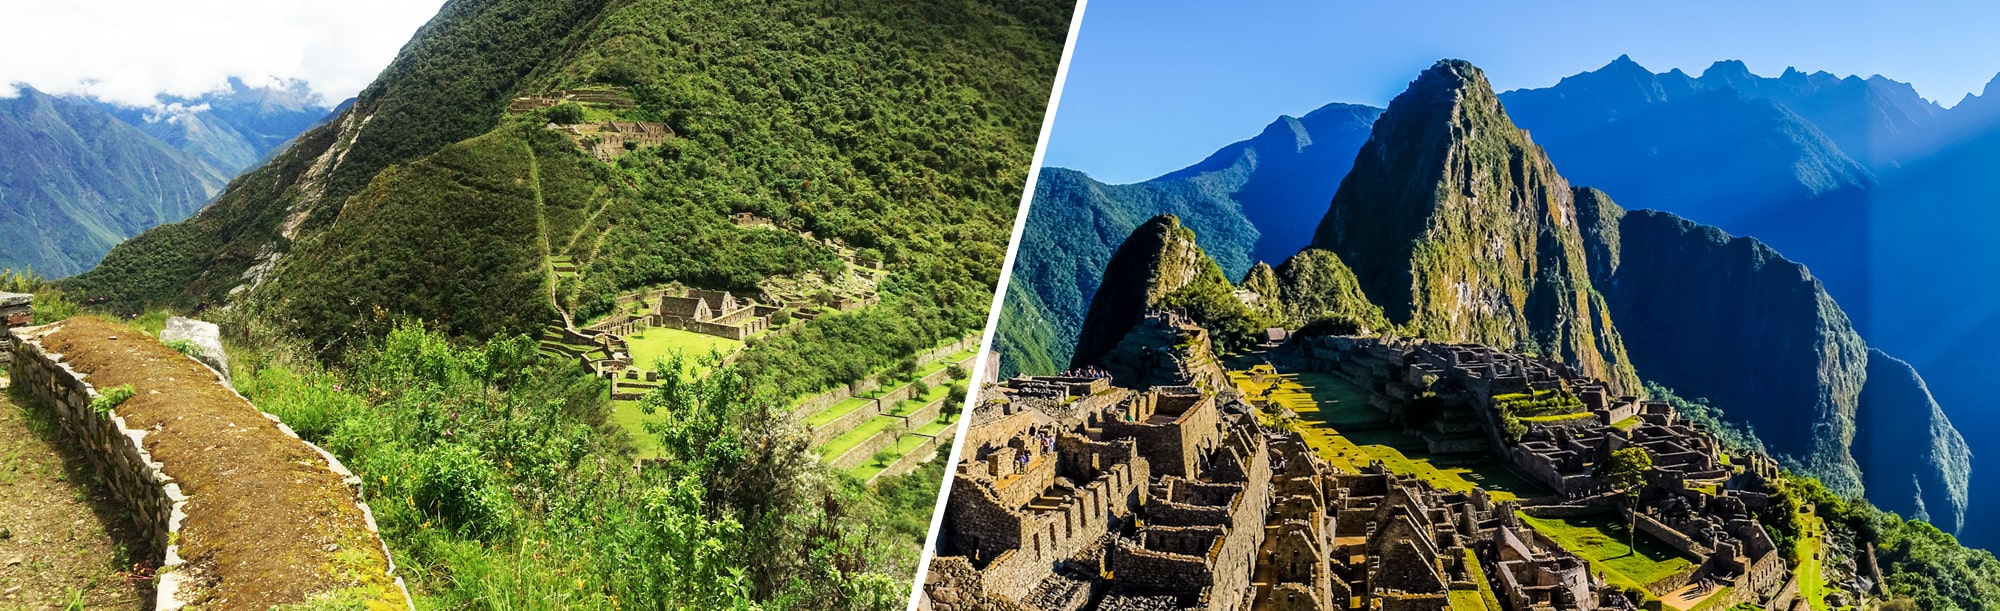 Choquequirao Trek 8 Days